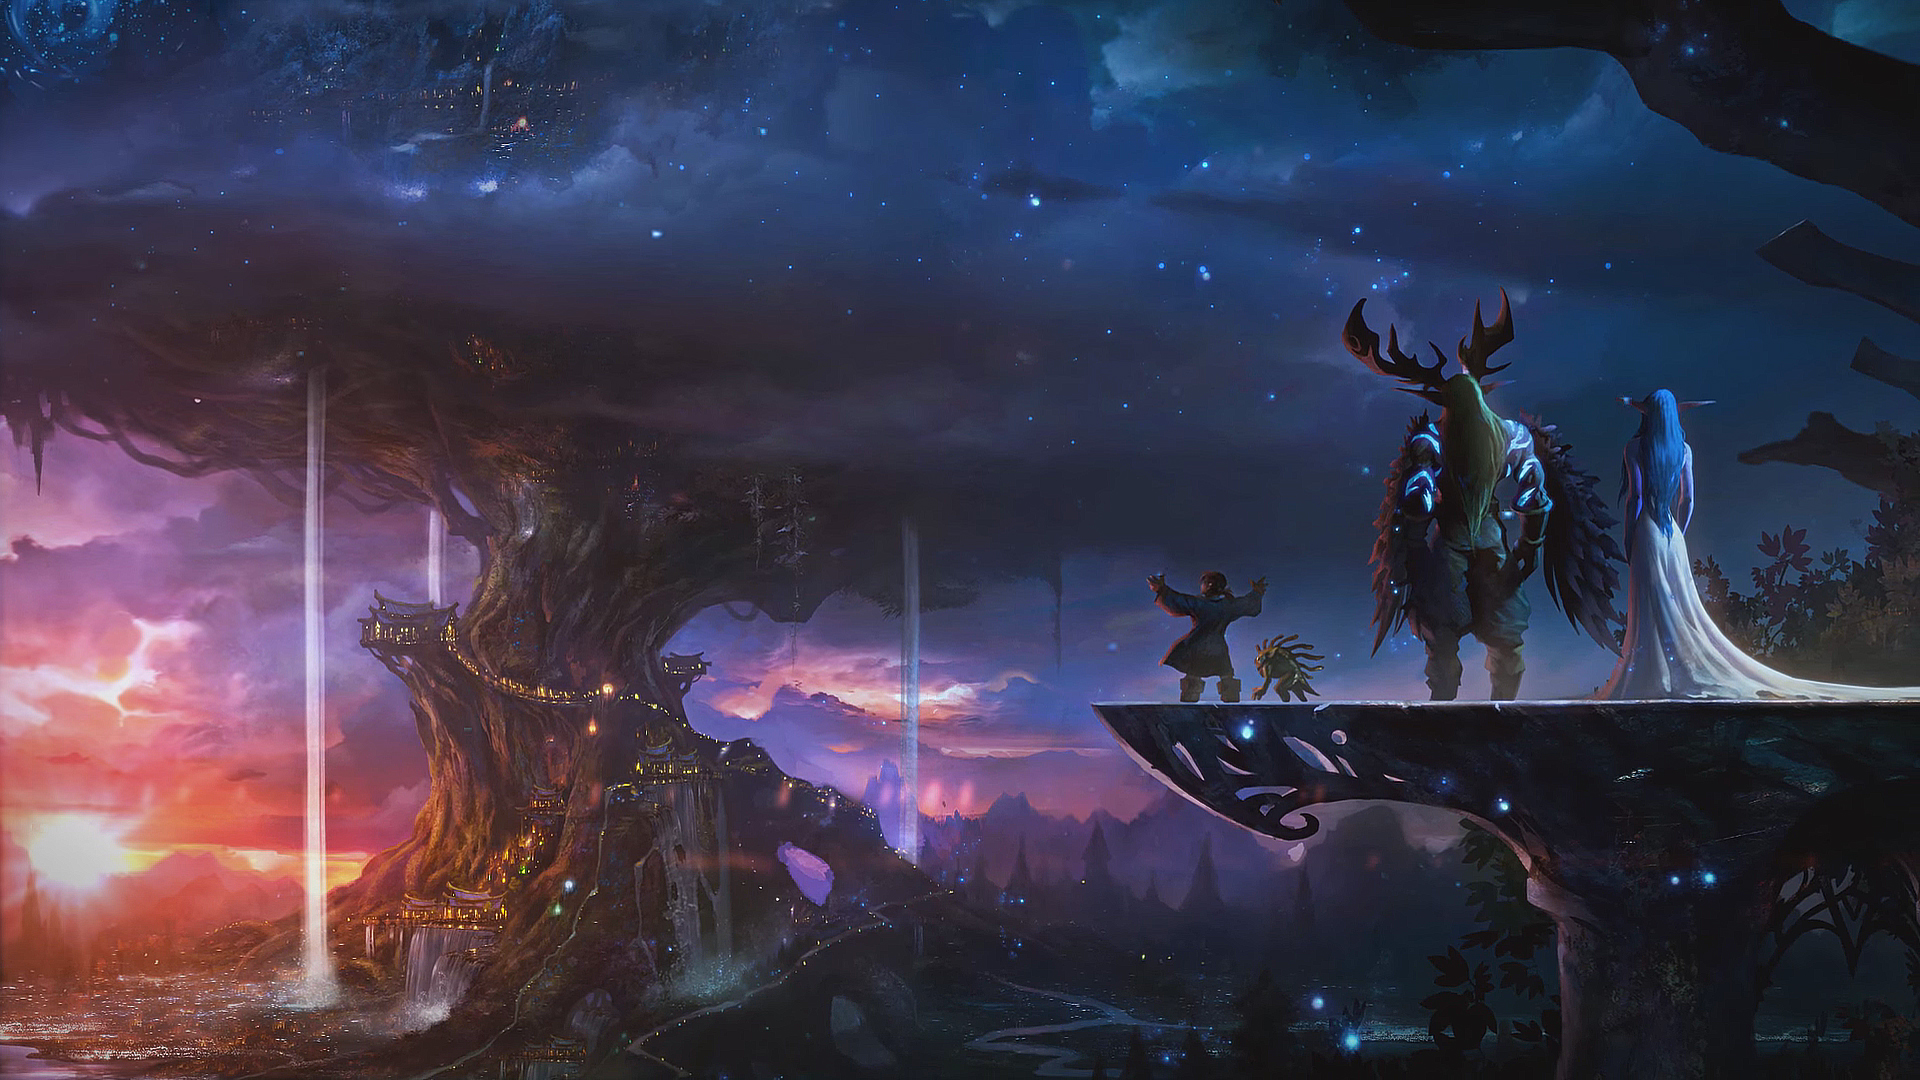 World Of Warcraft Wallpaper Bfa: 1 World Of Warcraft: Traveler HD Wallpapers